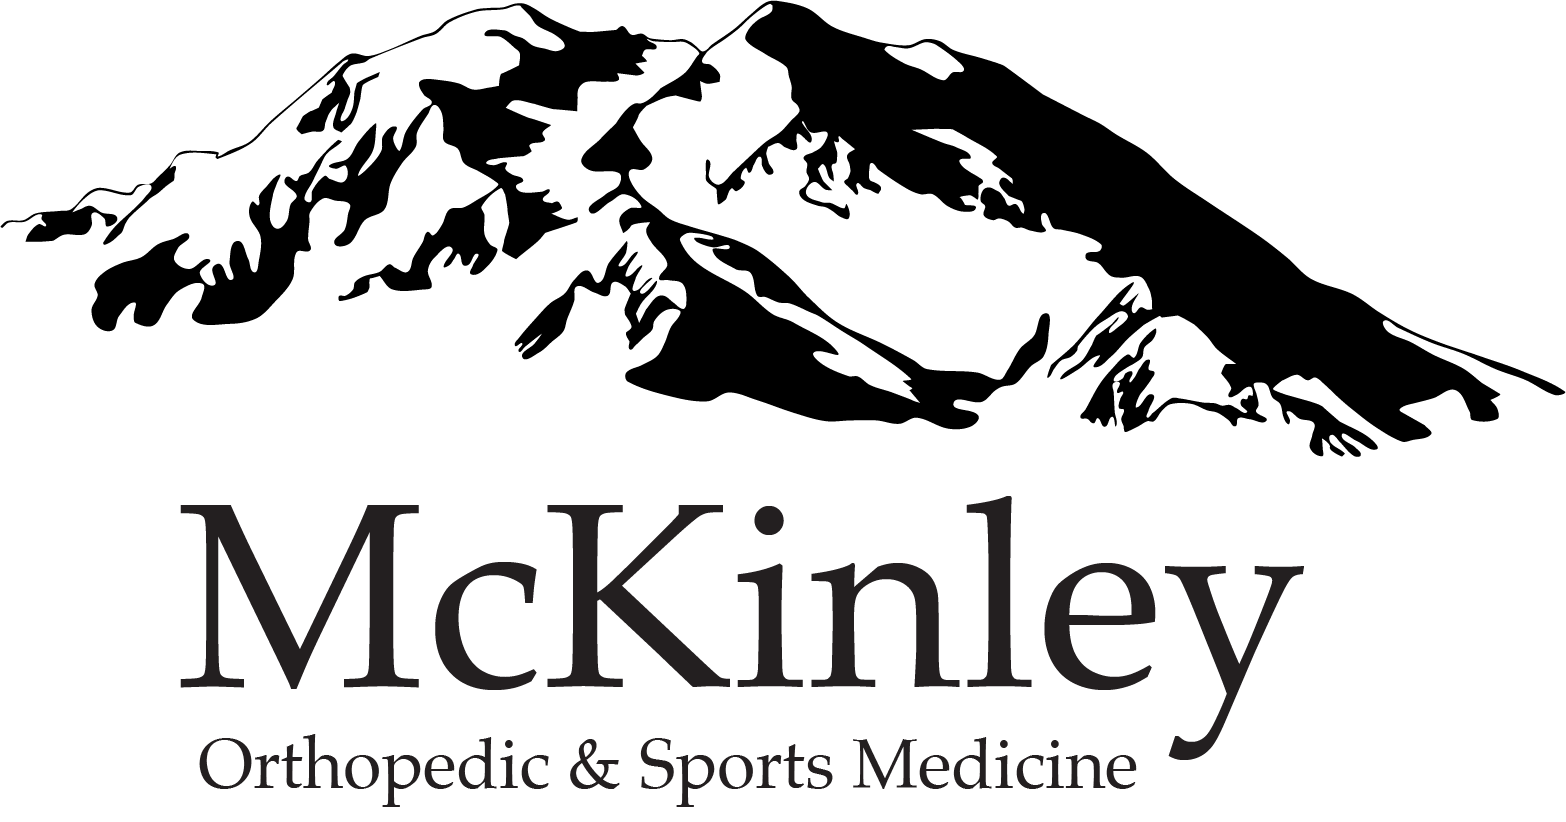 McKinley Orthopedic & Sports Medicine of Fairbanks logo